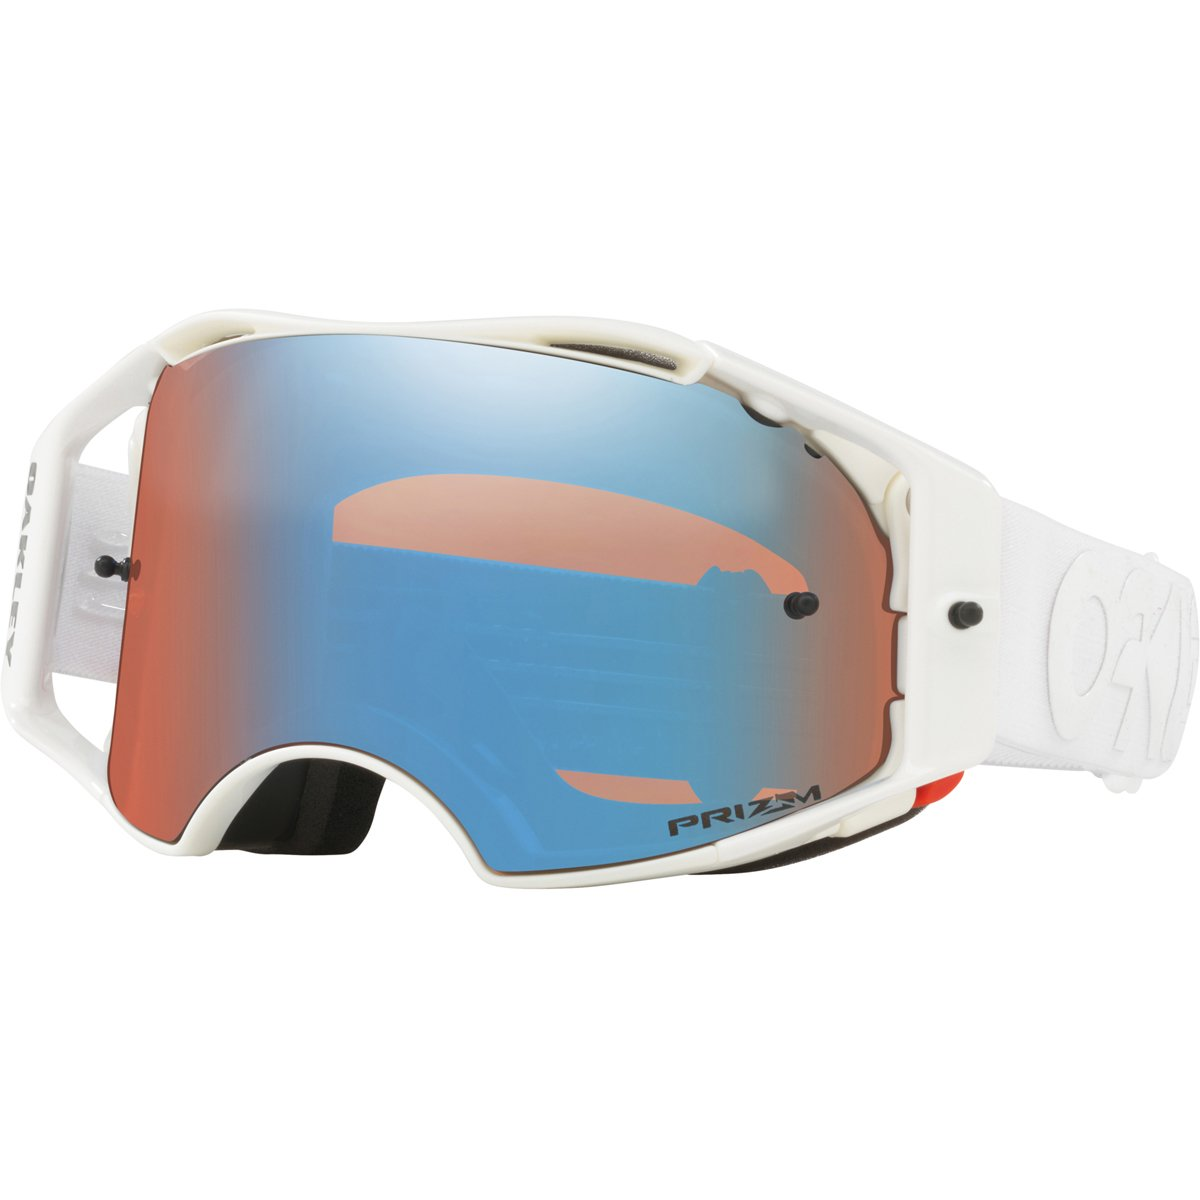 Oakley ABMX FP Whiteout with Prizm MX Sapphire unisex-adult Goggles (White, Medium), 1 Pack